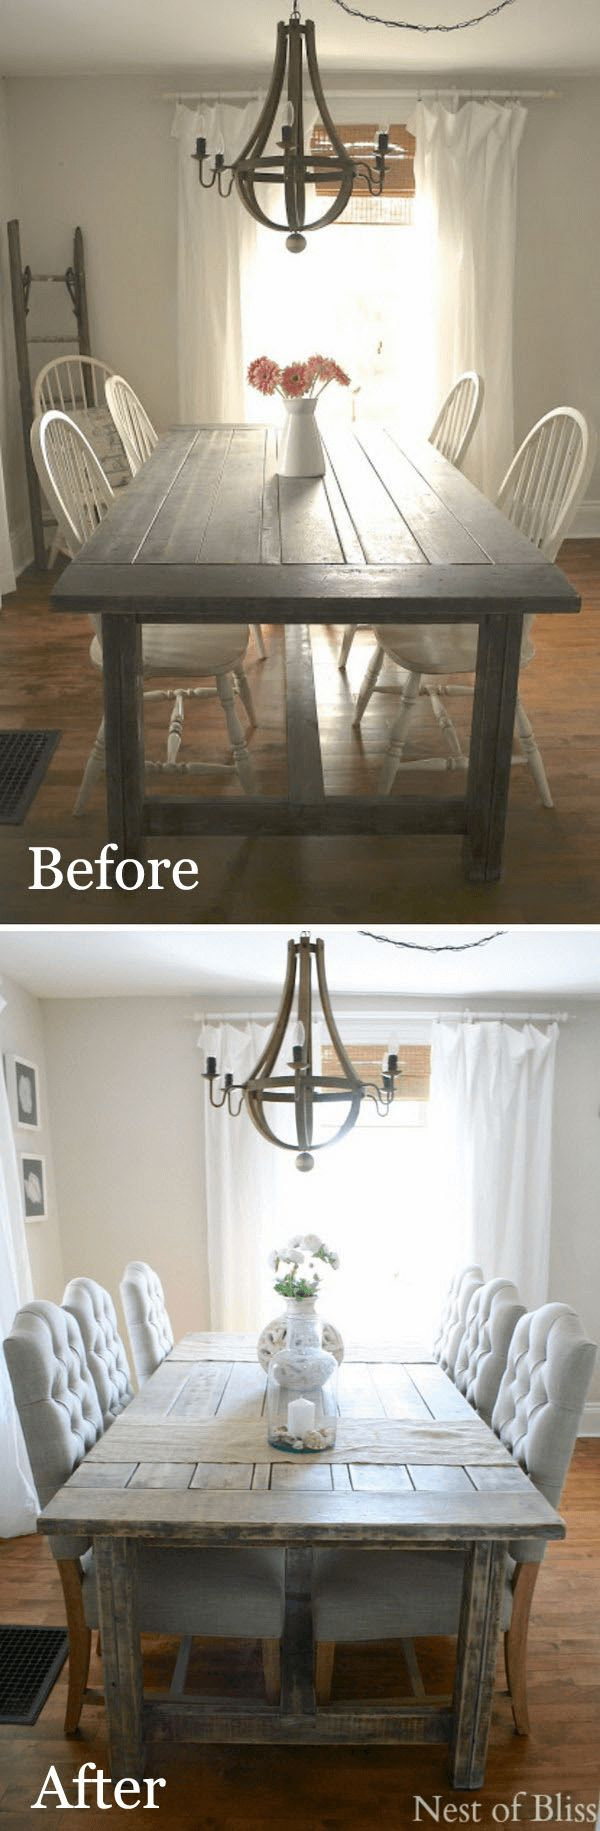 Simple dining table makeover with change the chairs before and after, get 18 more as ideas